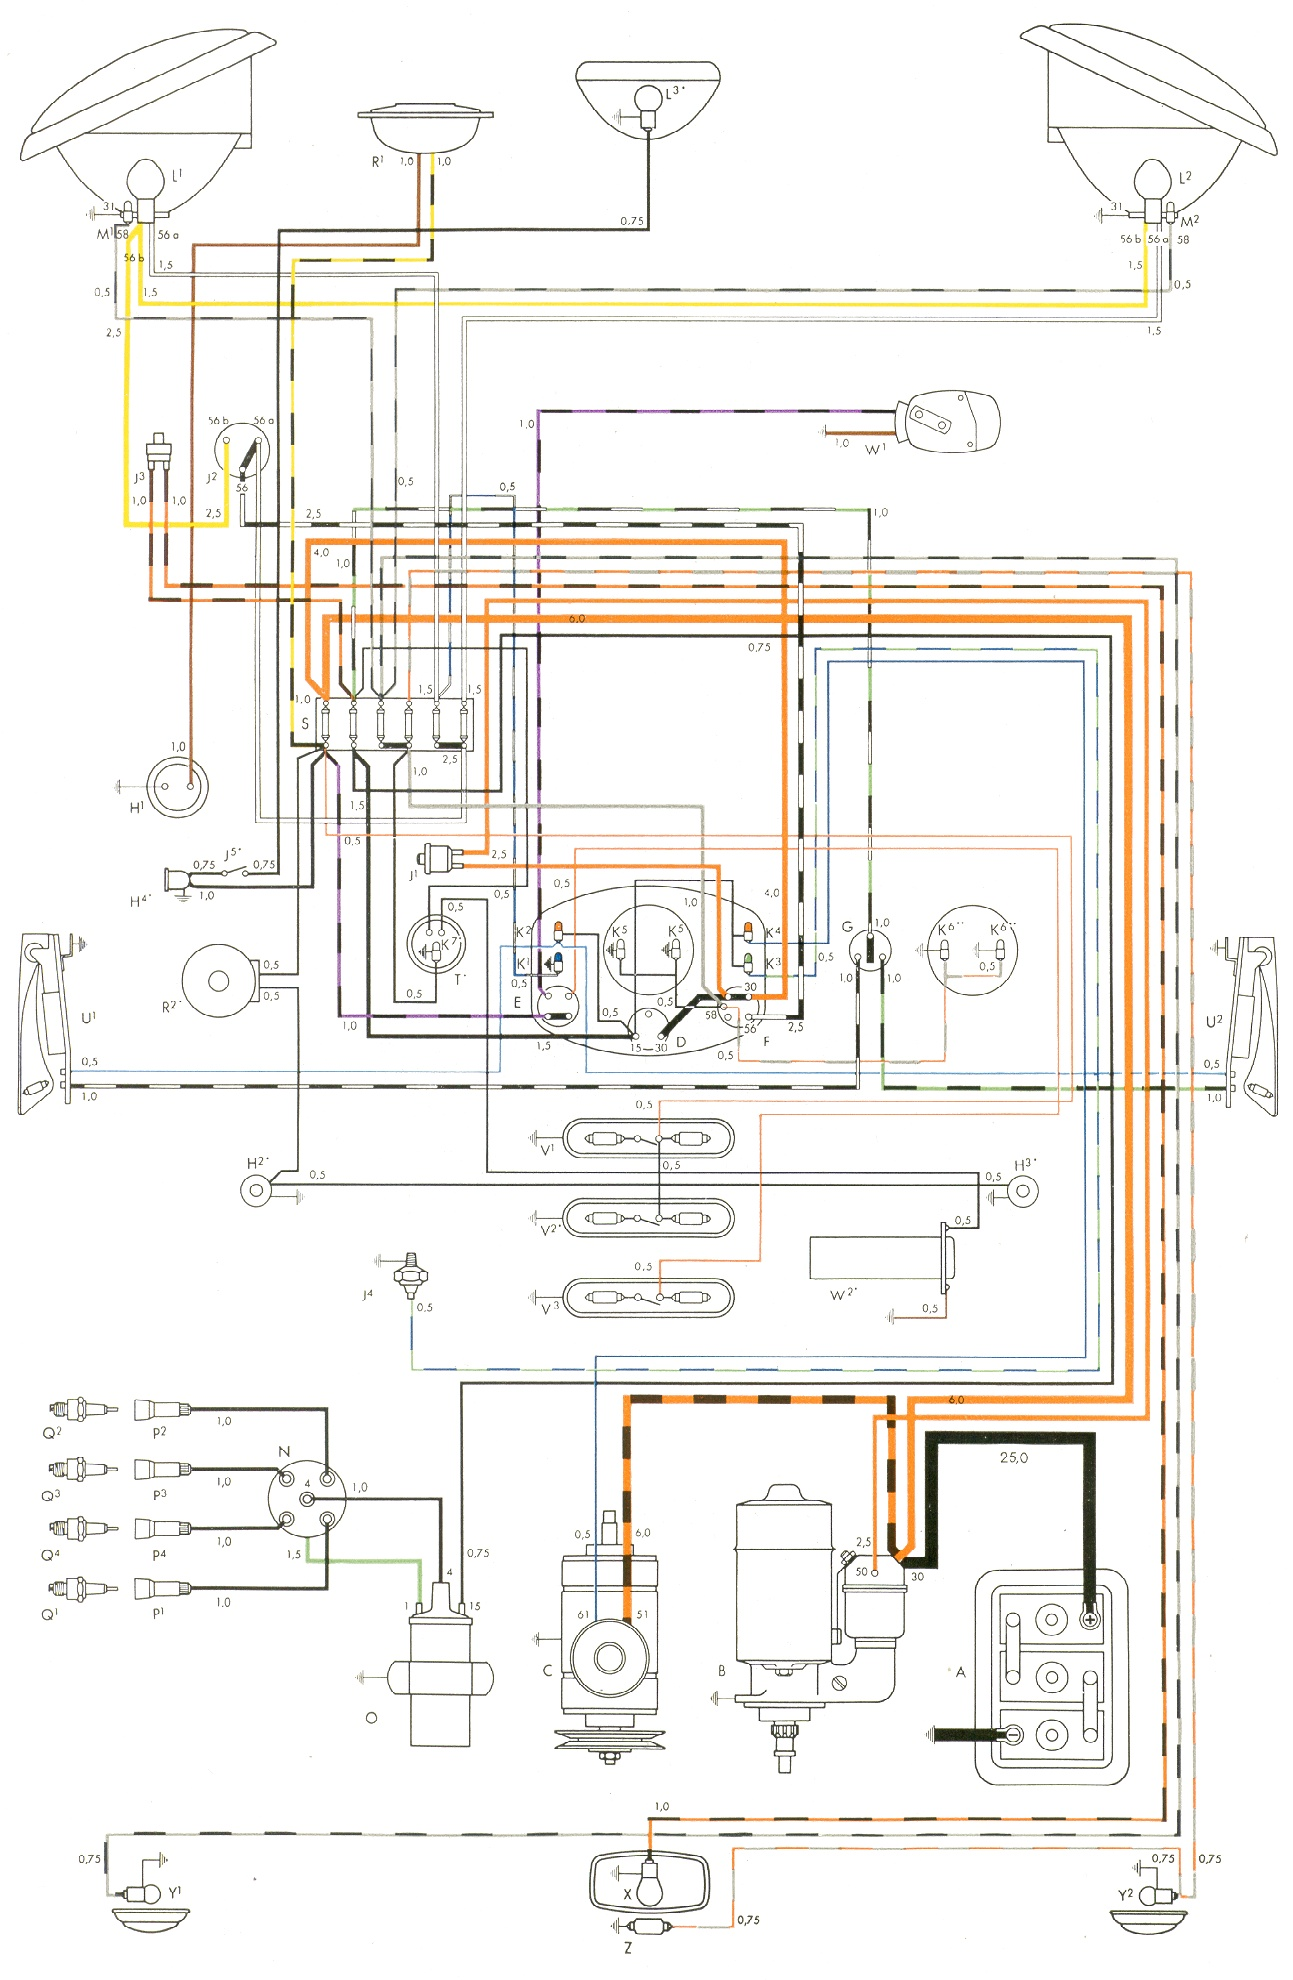 bus 54 vw wiring diagrams Chevy Ignition Coil Wiring Diagram at soozxer.org